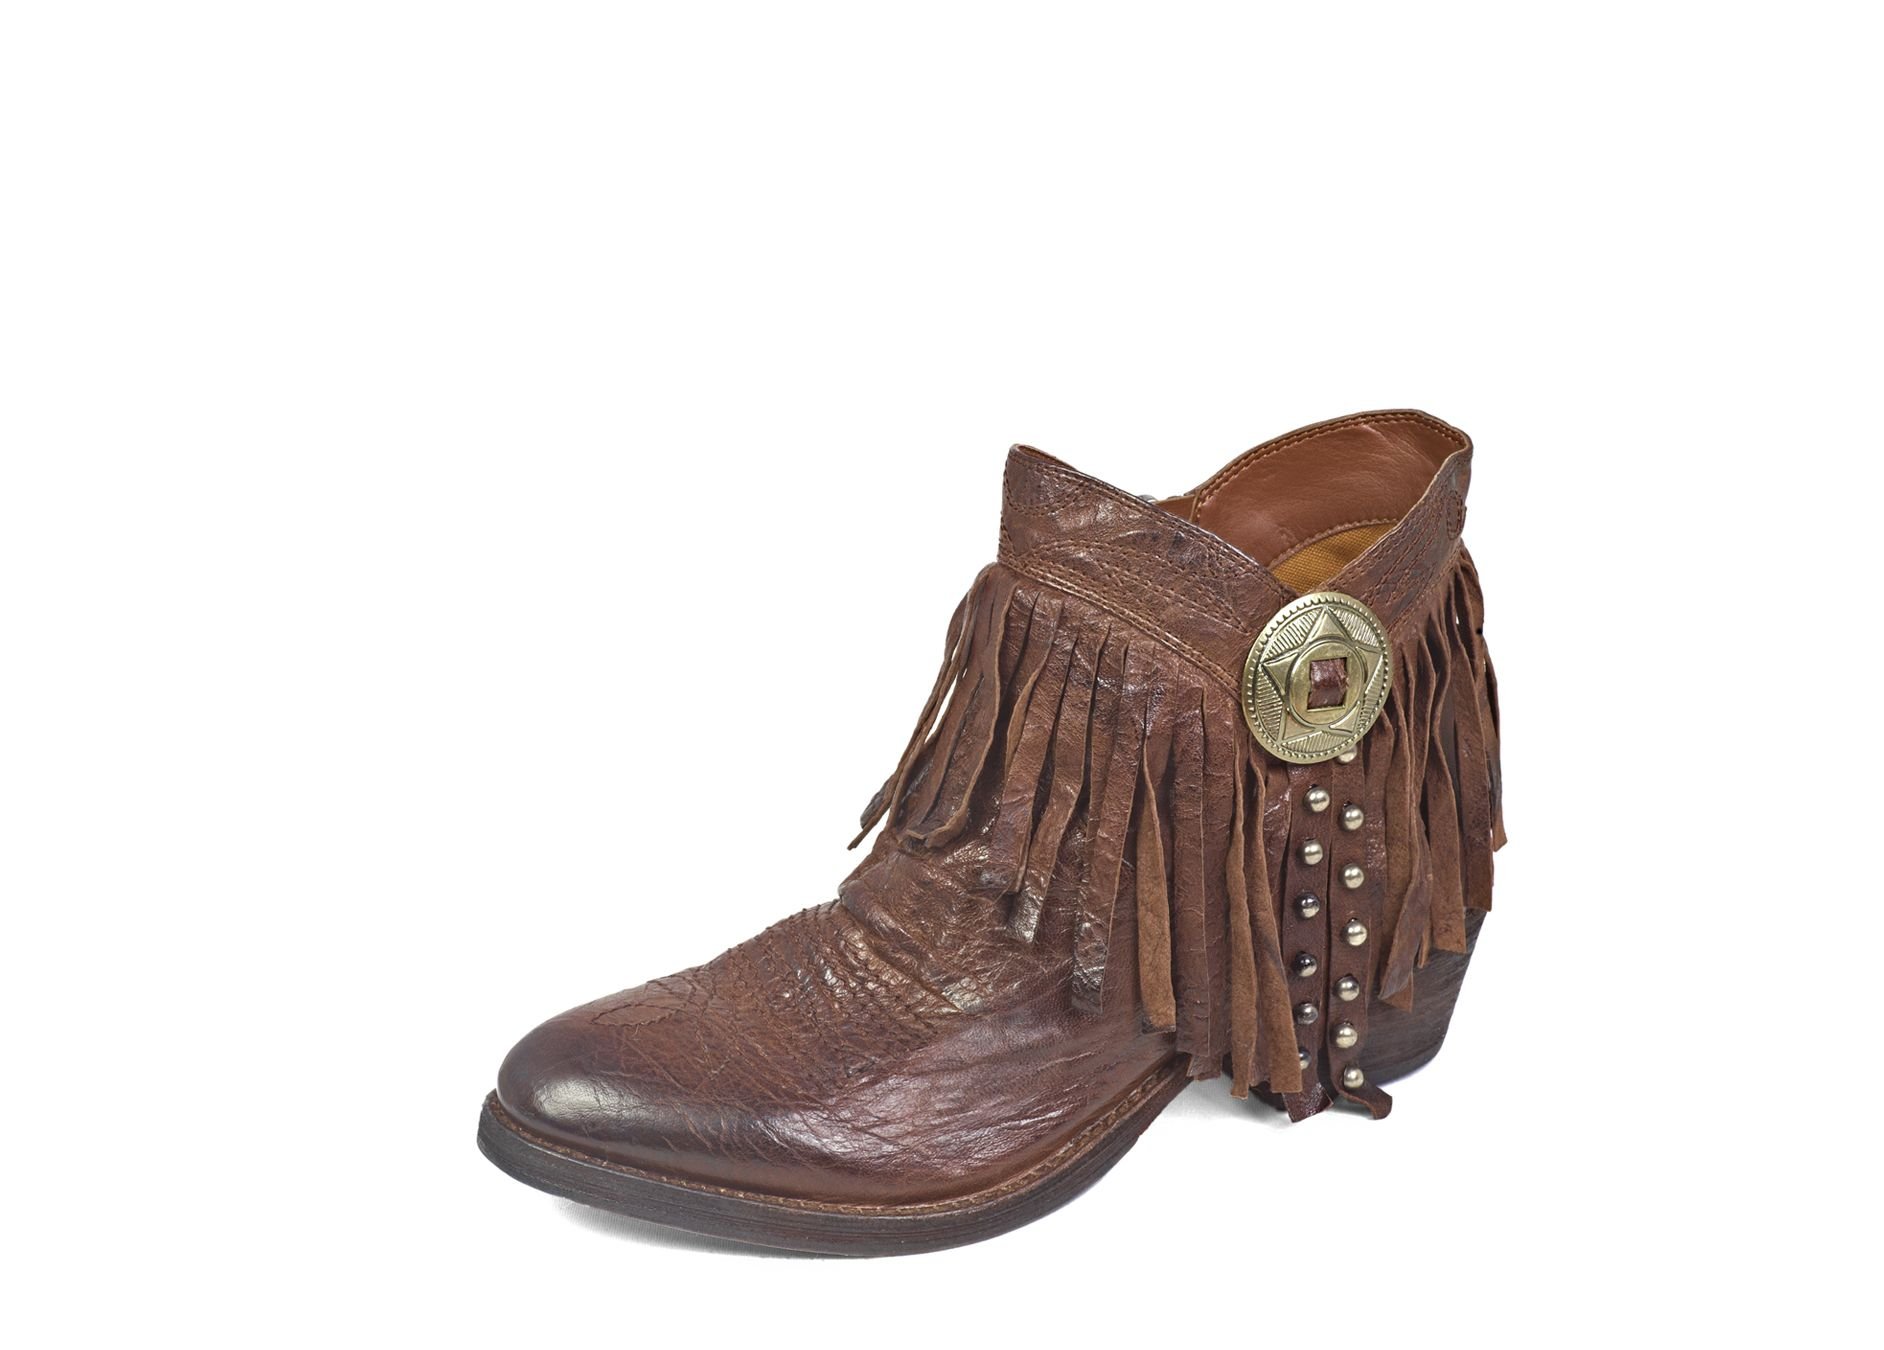 fdaa34e3c3ae SIDNEY Sam Edelman Boots - Another View